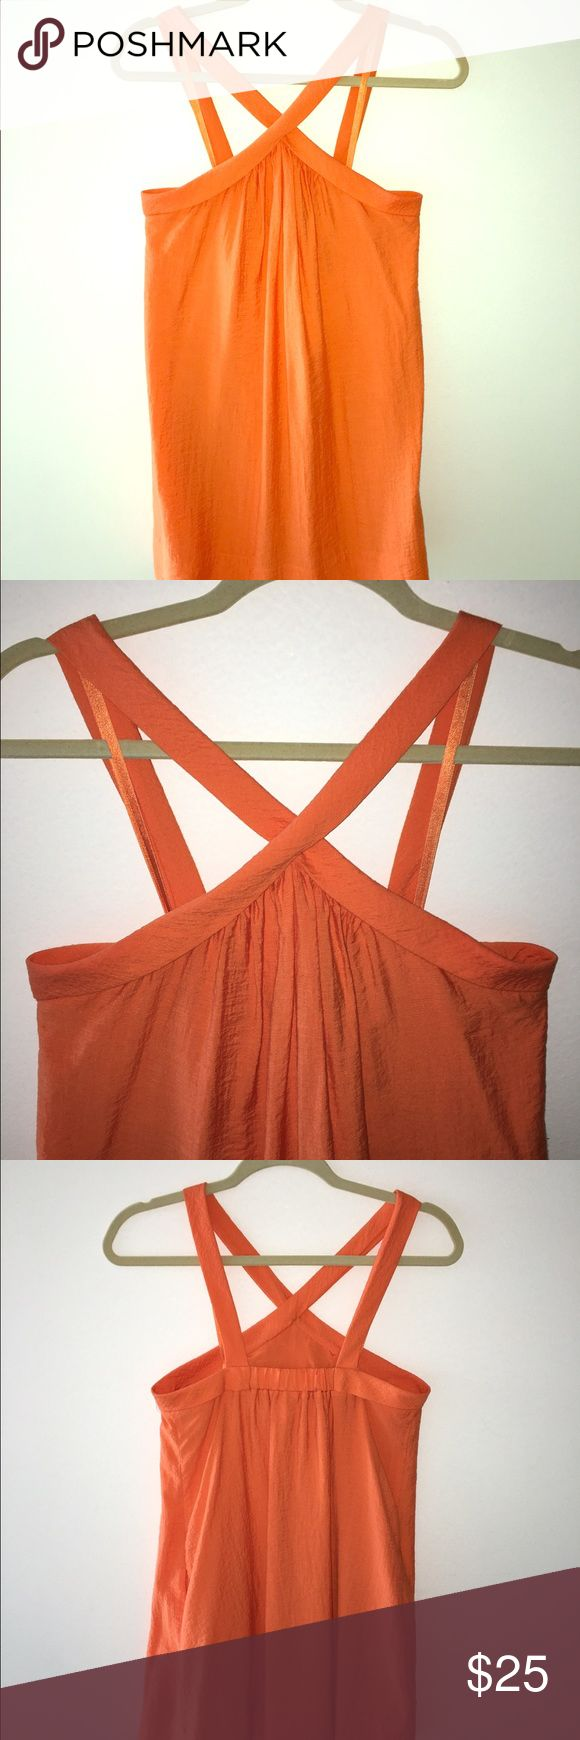 BCBG Dress Adorable orange cross neck shift with POCKETS! Worn twice. Pair with gold wedges and a bright clutch. Perfect for your next tropical getaway. Length 35 in. Fits a size2. Comes from a smoke and pet free home. BCBG Dresses